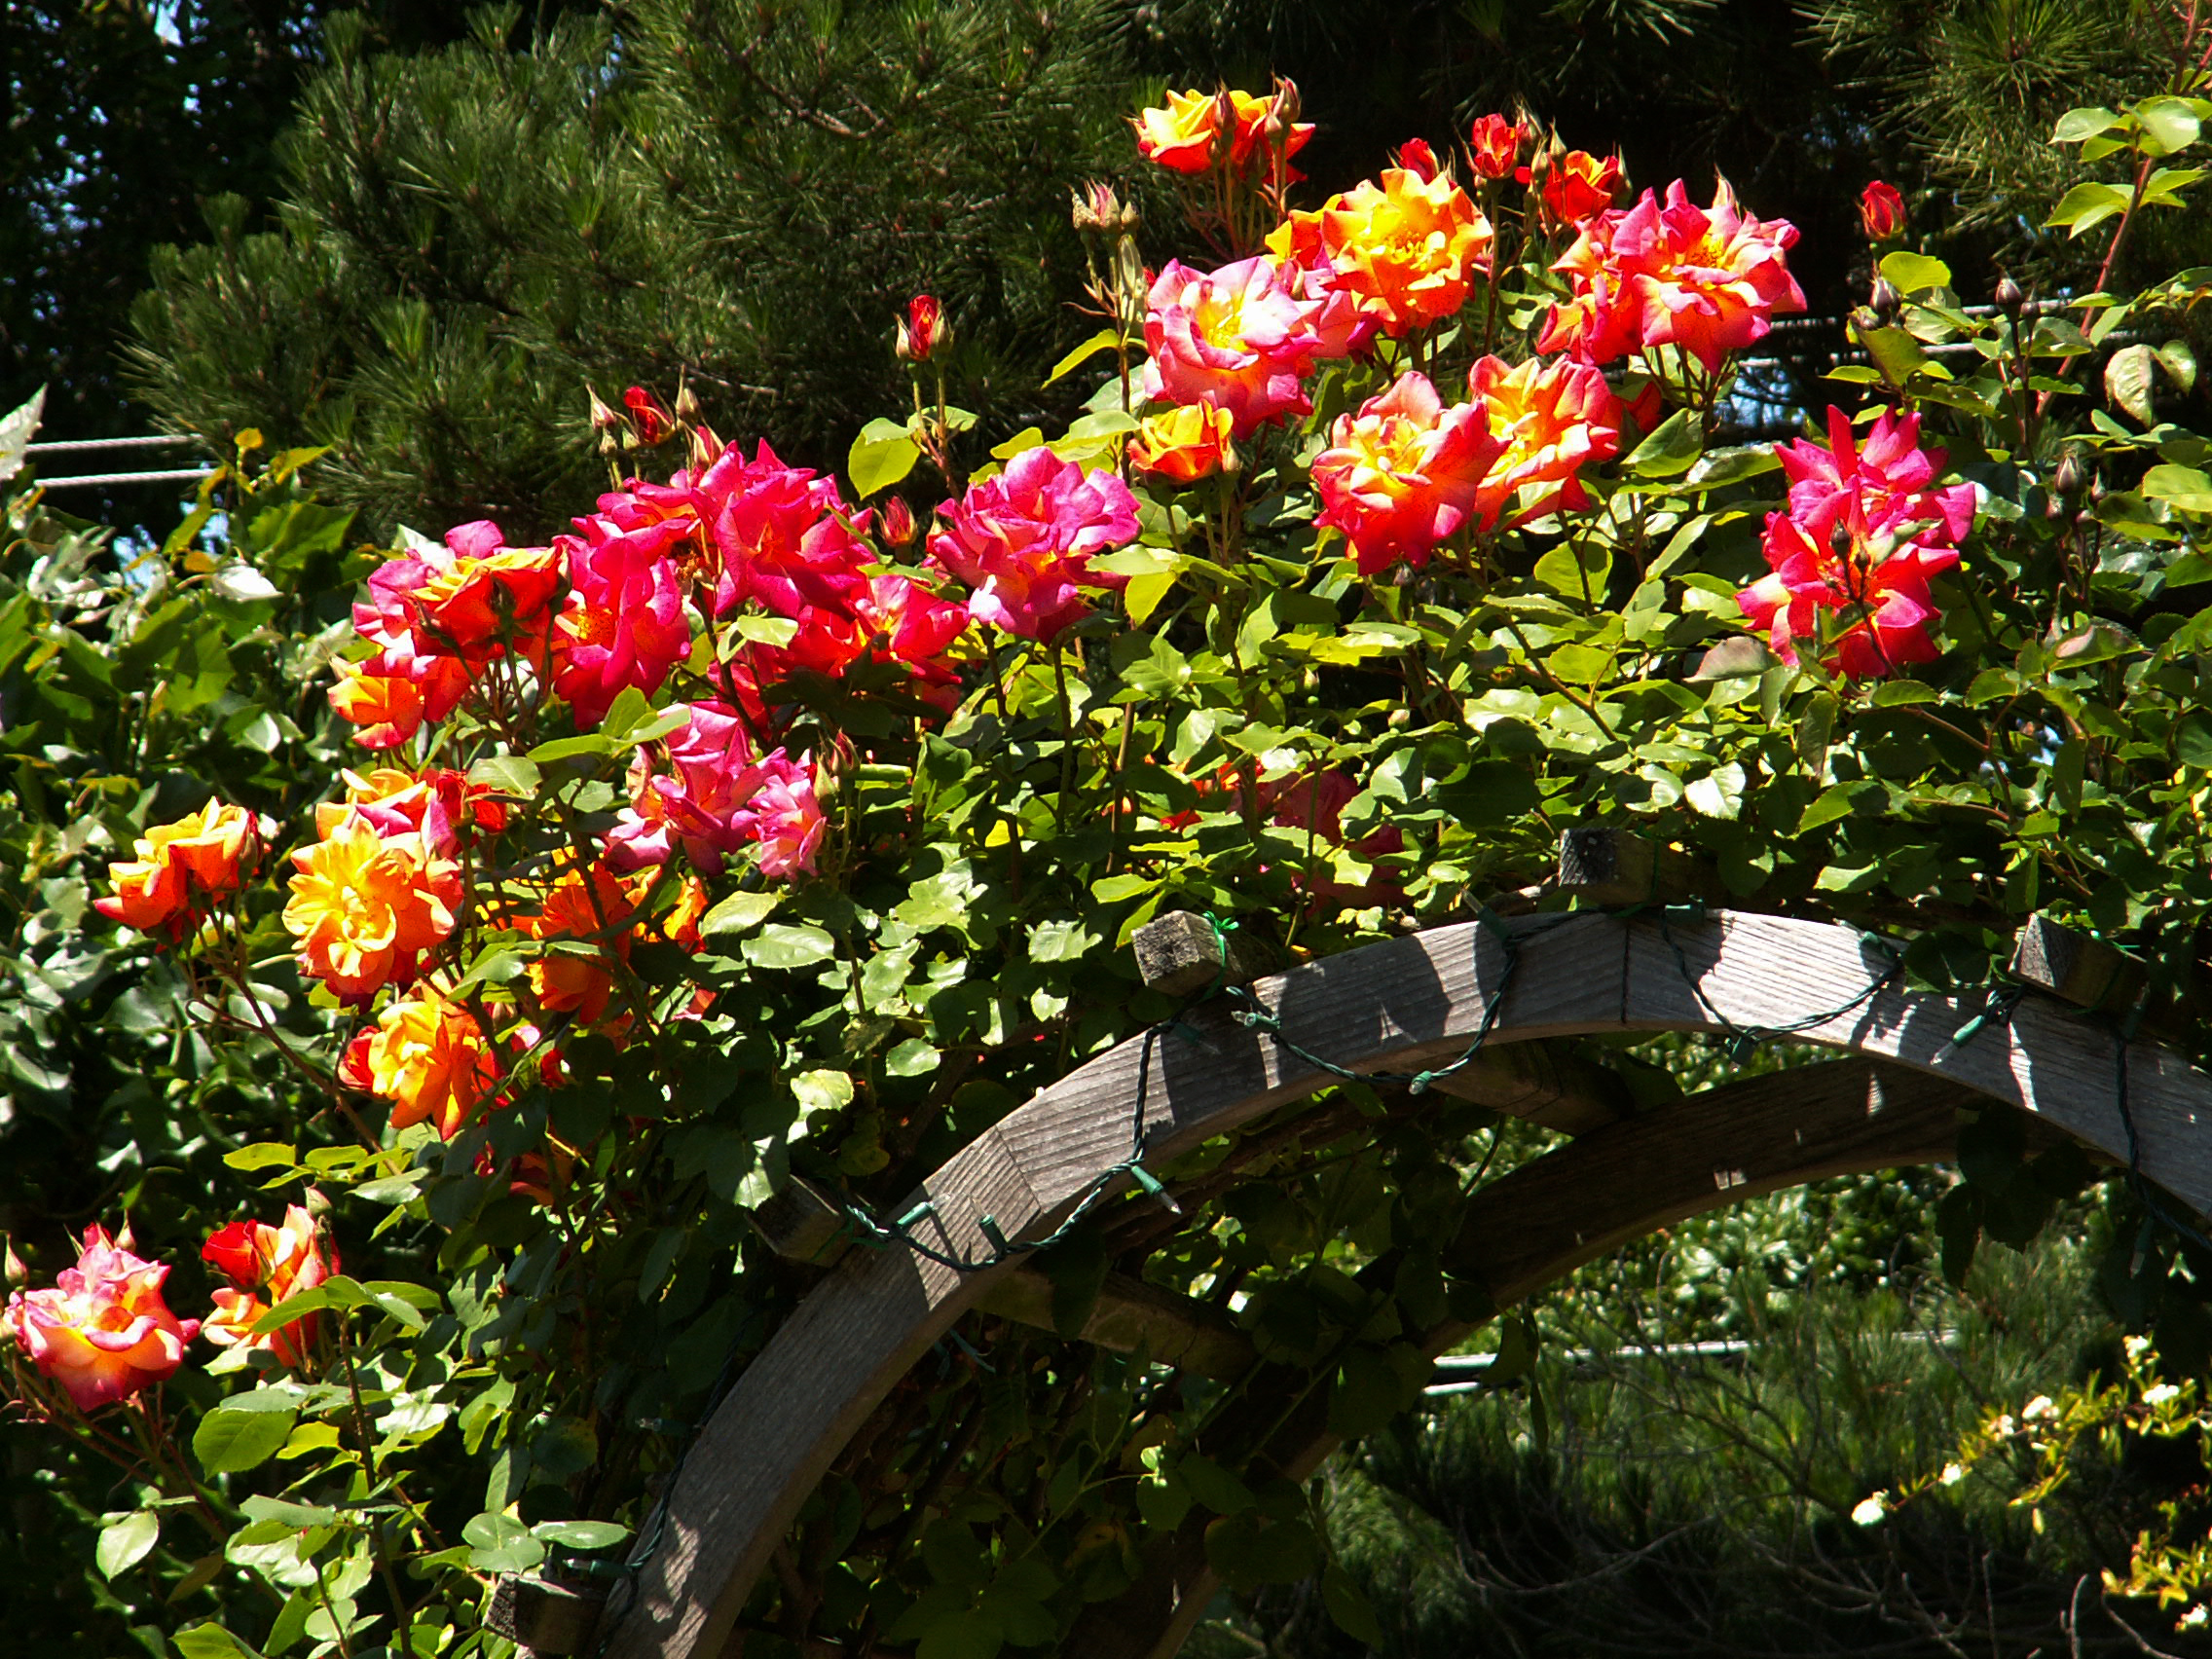 Different rose varieties need different pruning